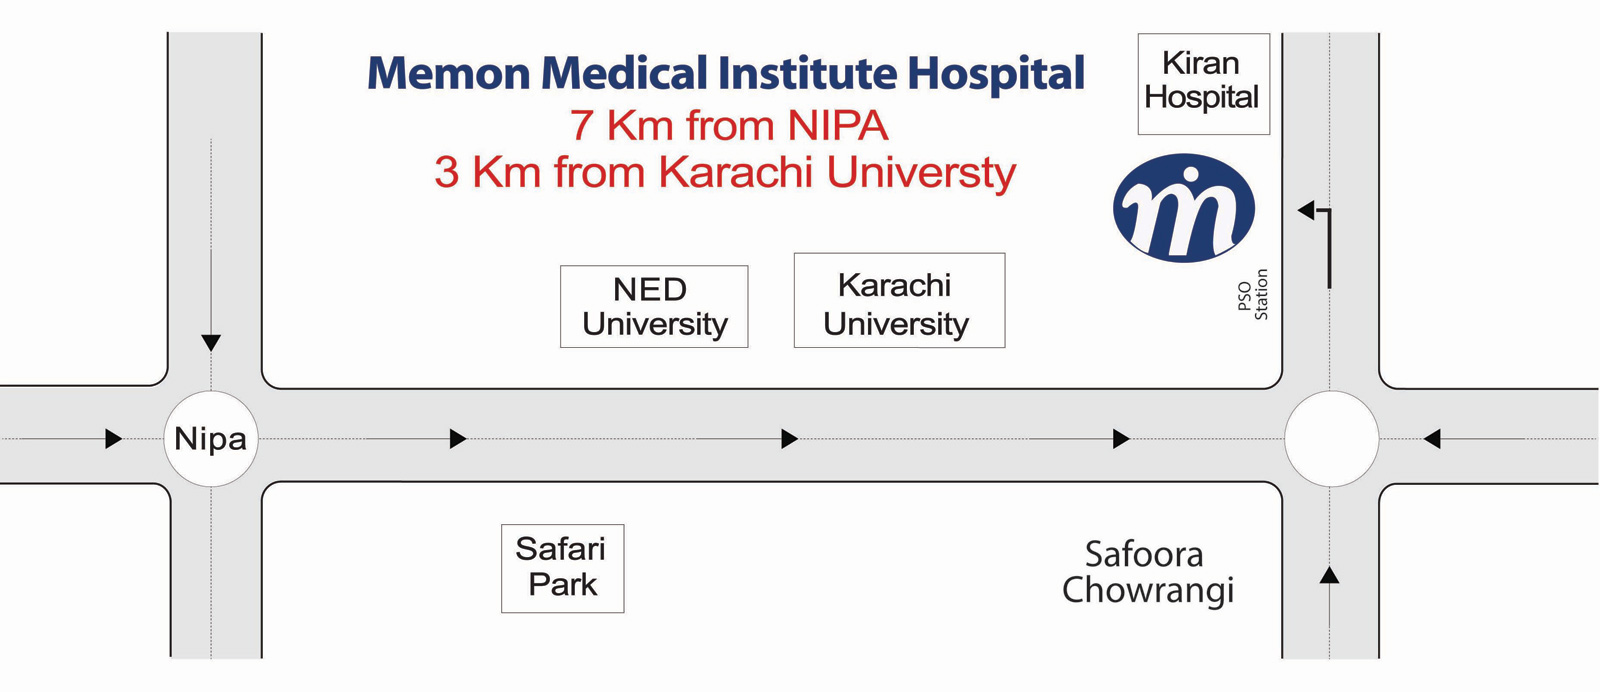 Career Opportunities Memon Medical Institute Hospital